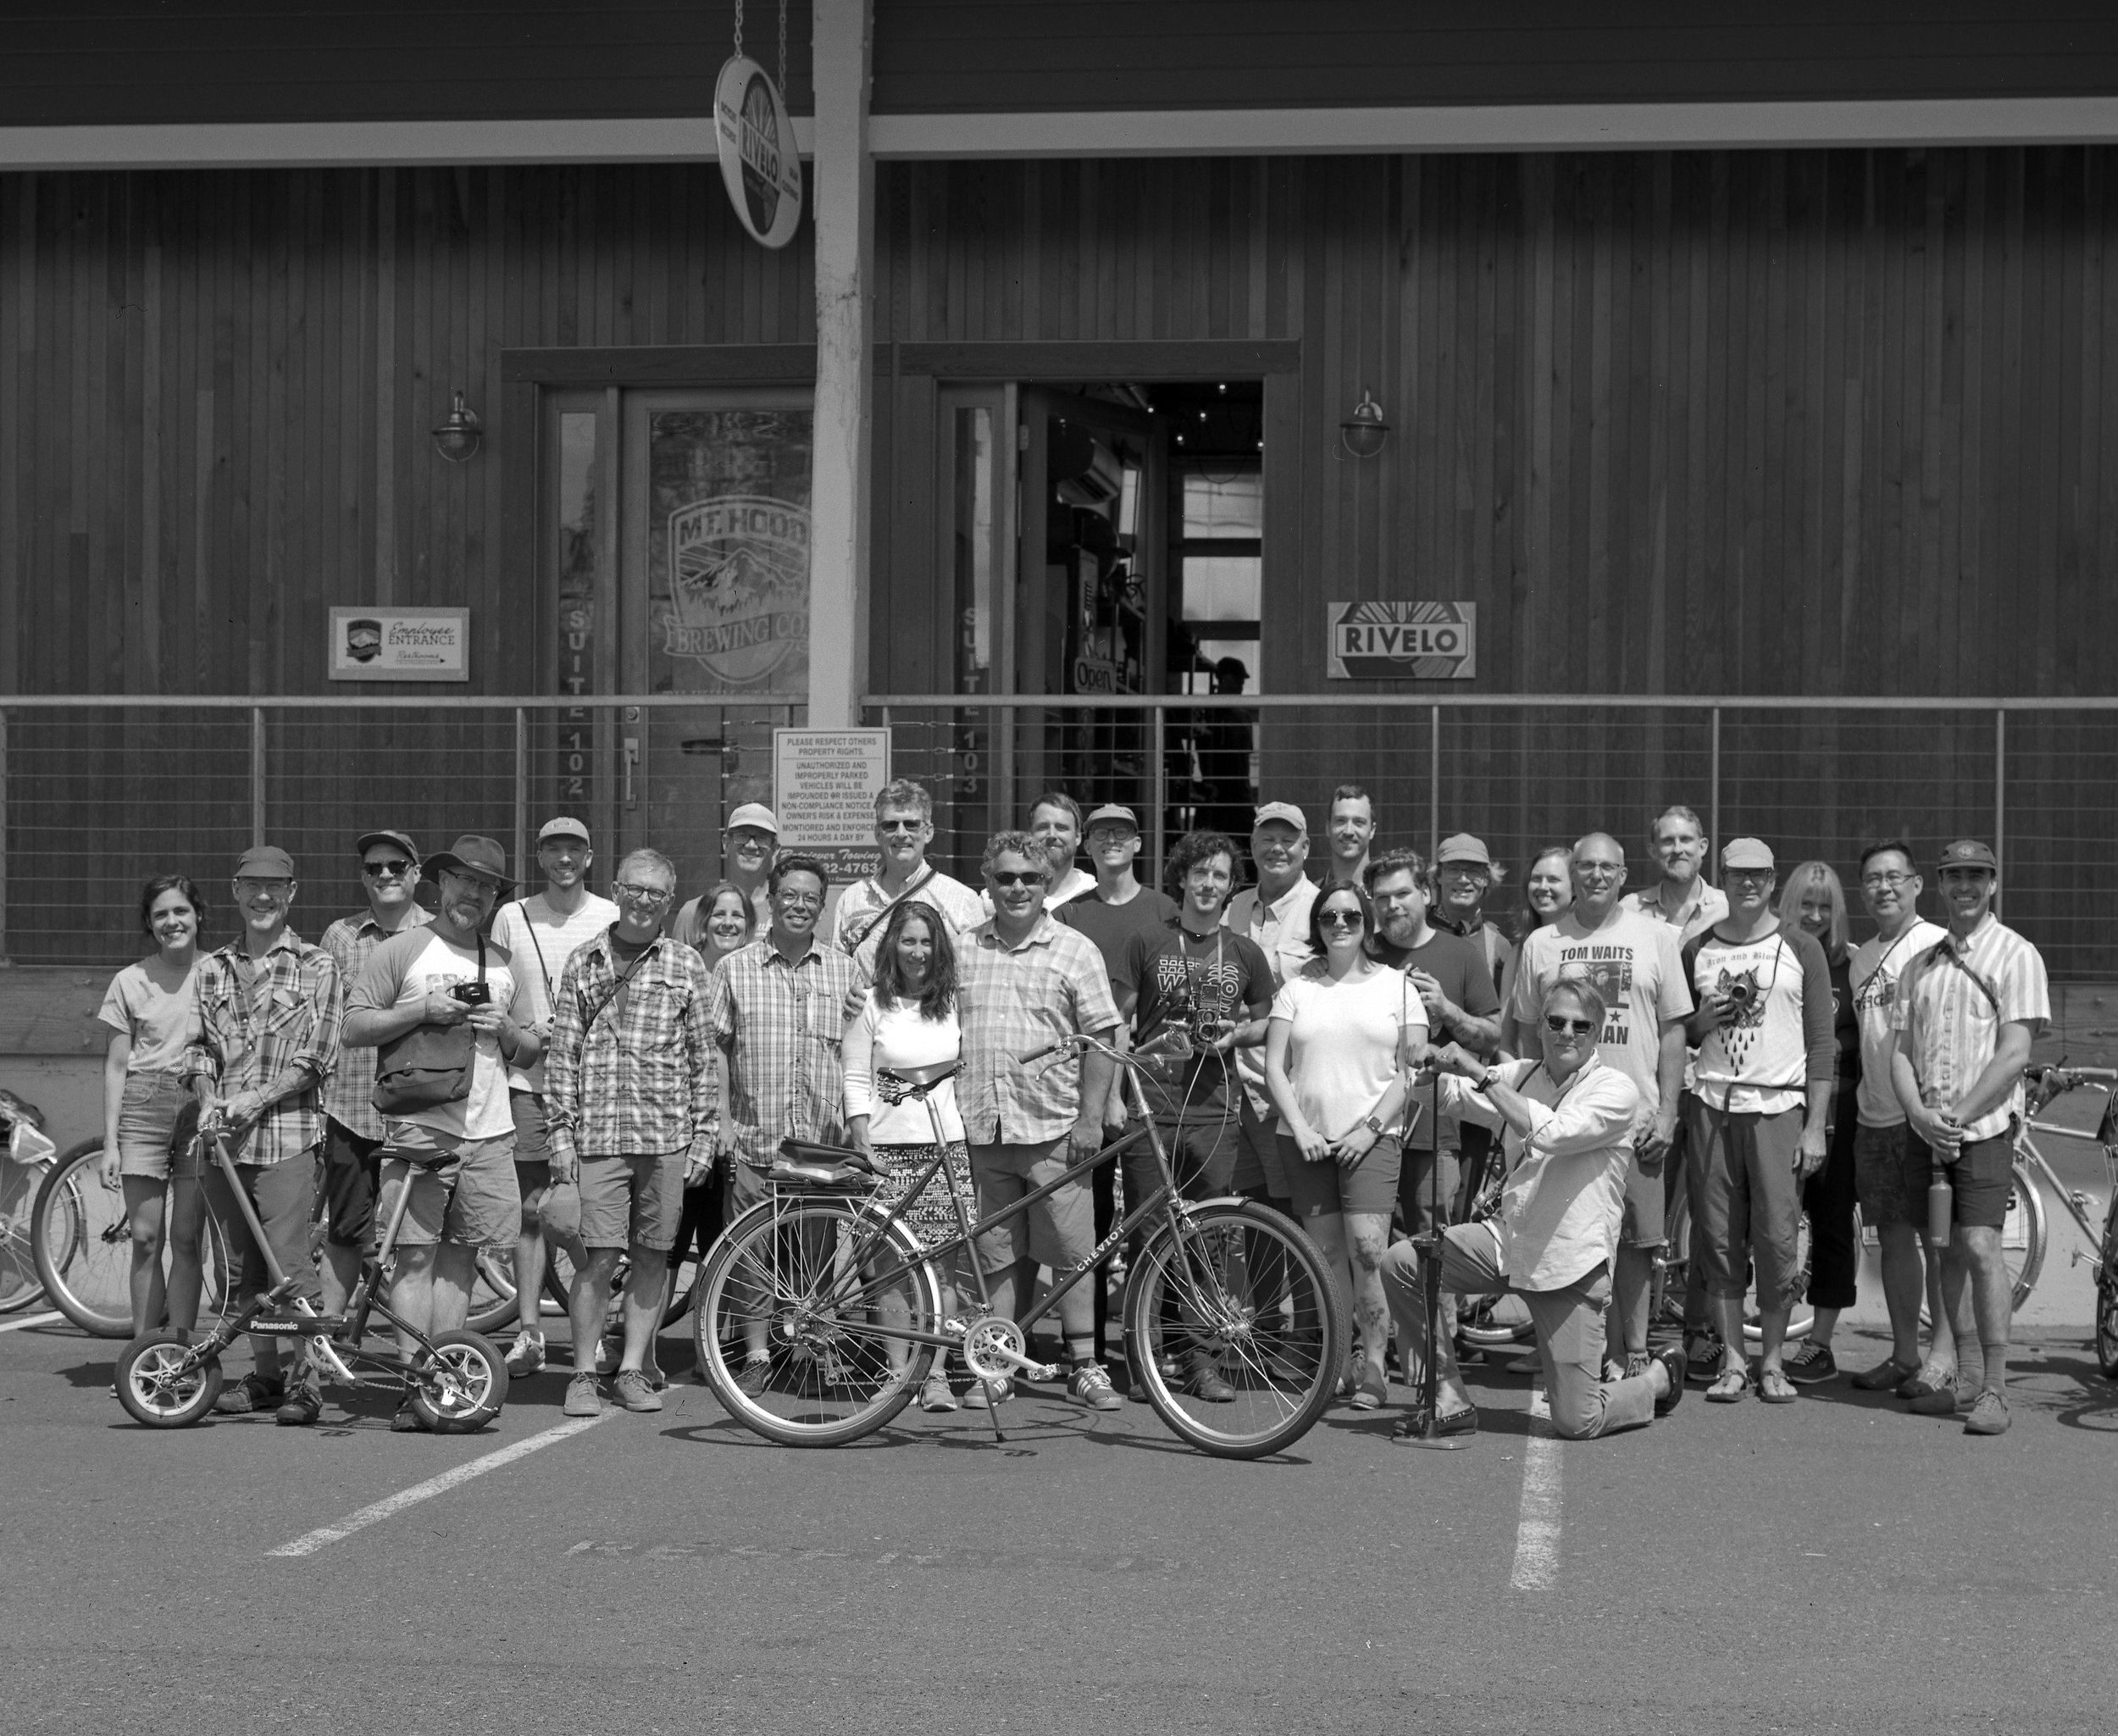 Will's super large scan of his group photo from our Rivelo Film Ride (7-27-19). No Darby because she pressed the shutter. Thank you to everyone who came out. Fun day!